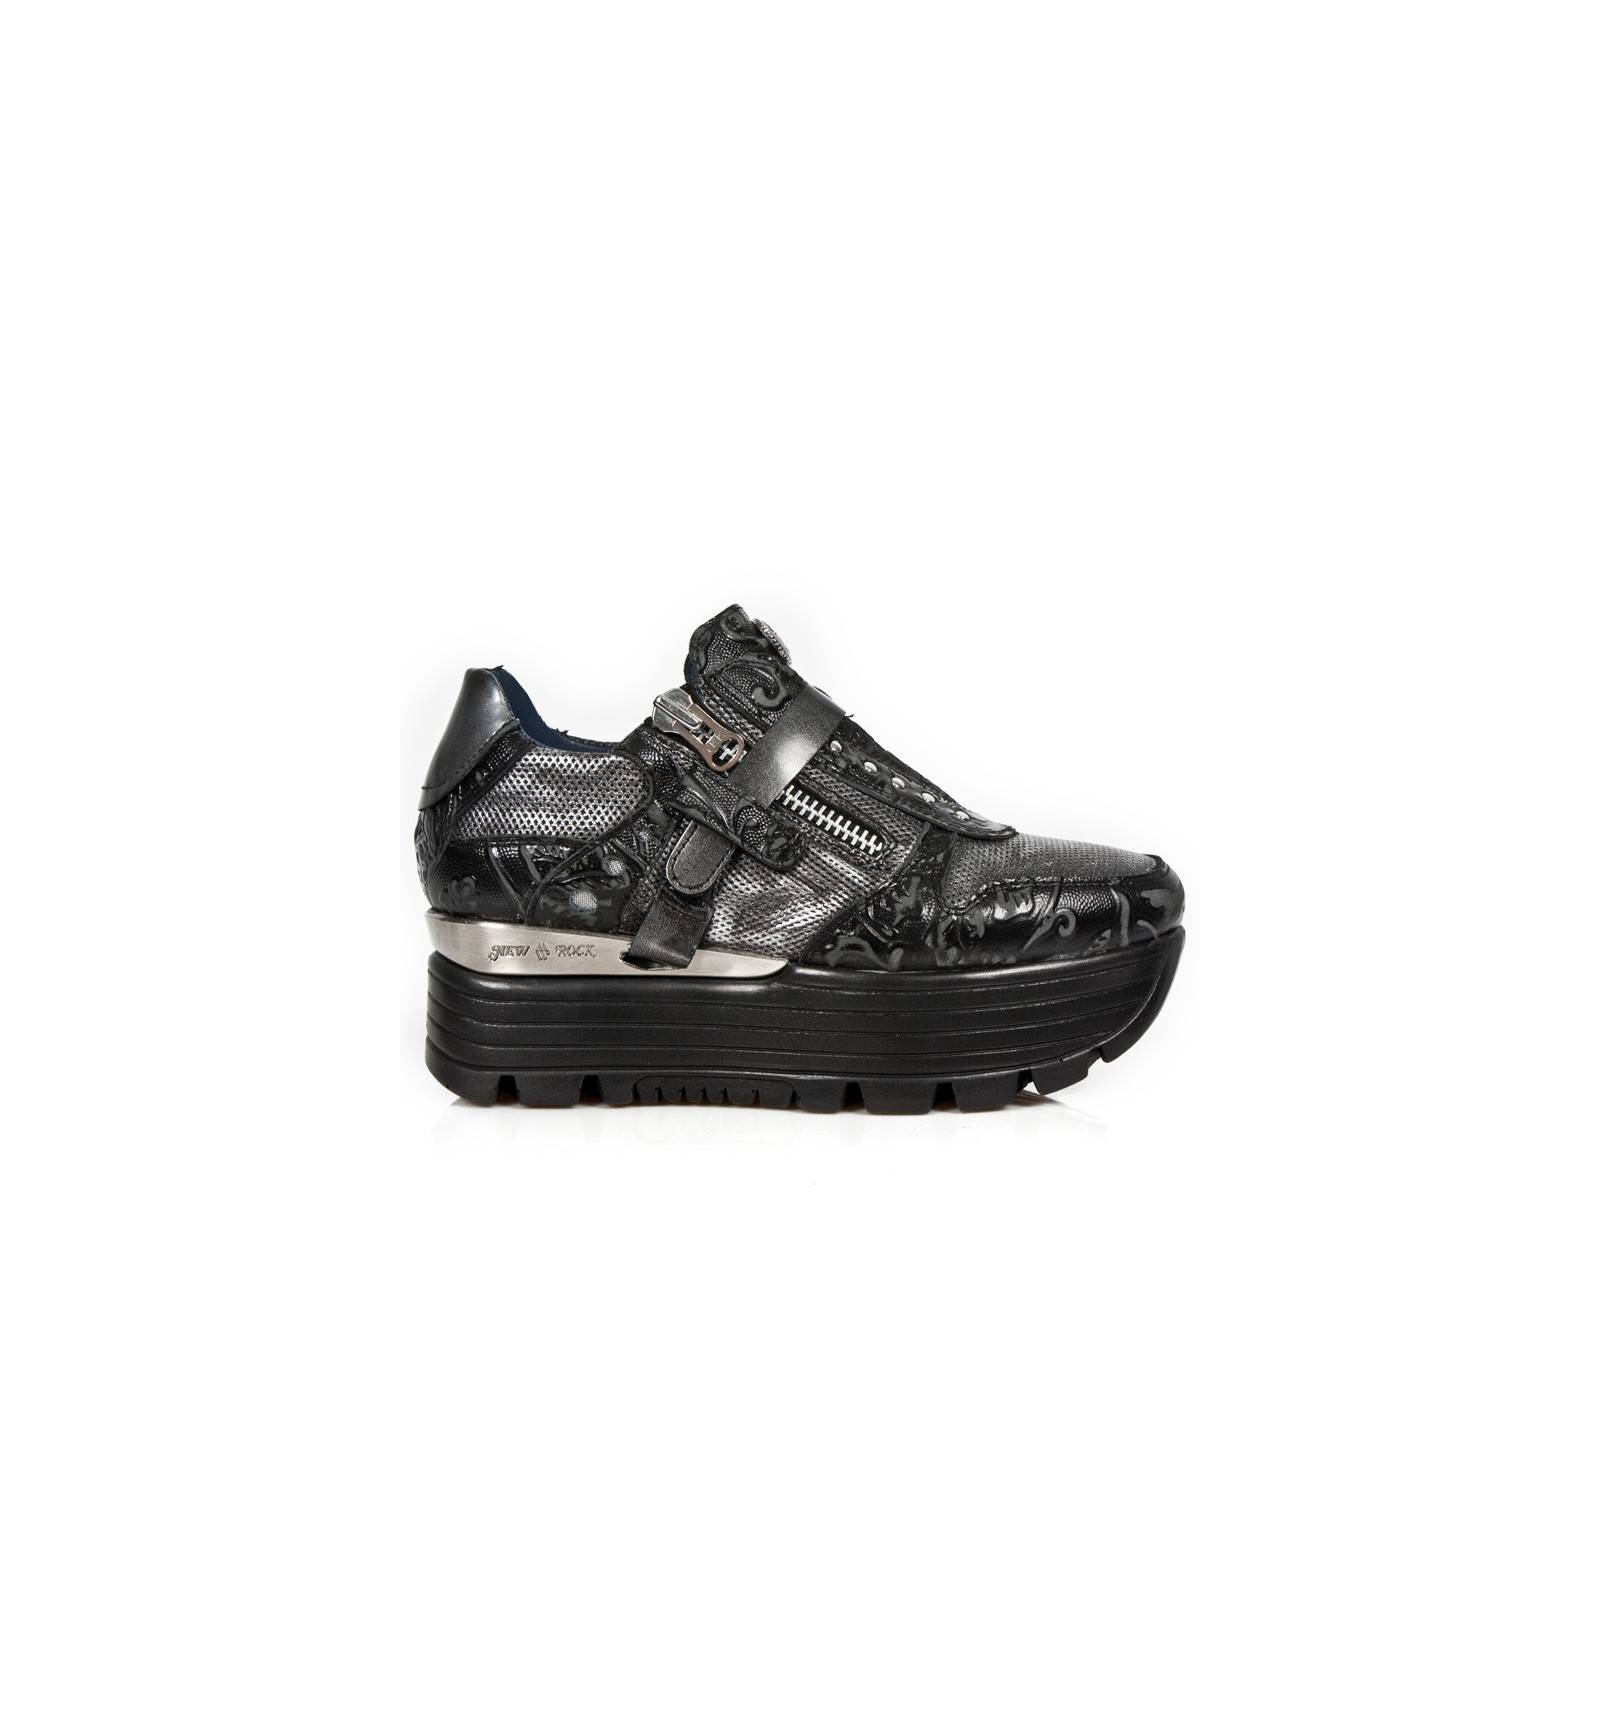 b9efbc7ffb7 URBAN018-S3 Zapatos Urban New Rock - Gothic-Zone